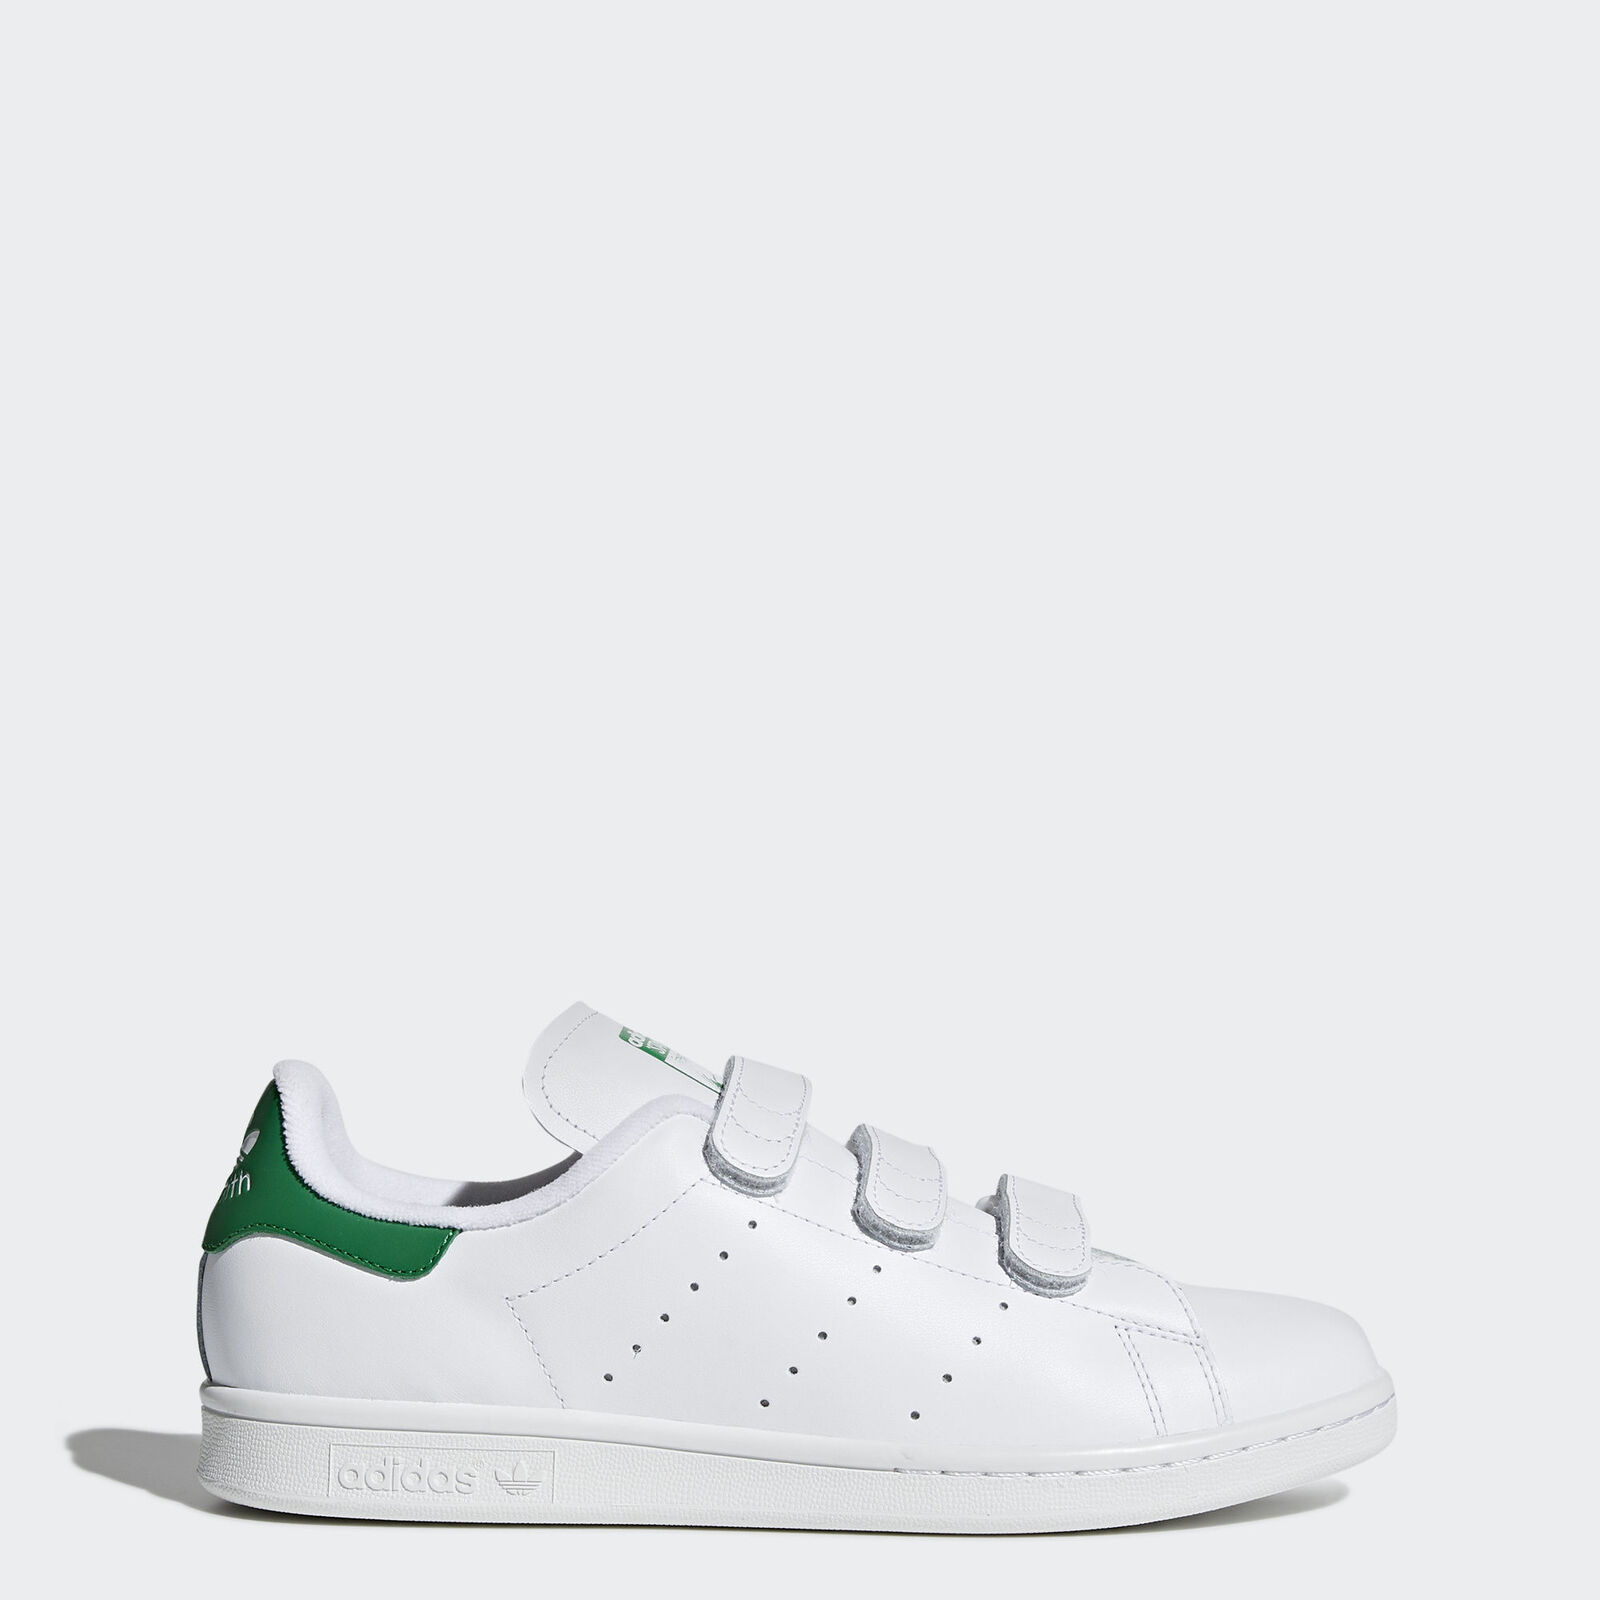 New adidas Originals Stan Smith Shoes S75187 Men\u0027s Sneakers